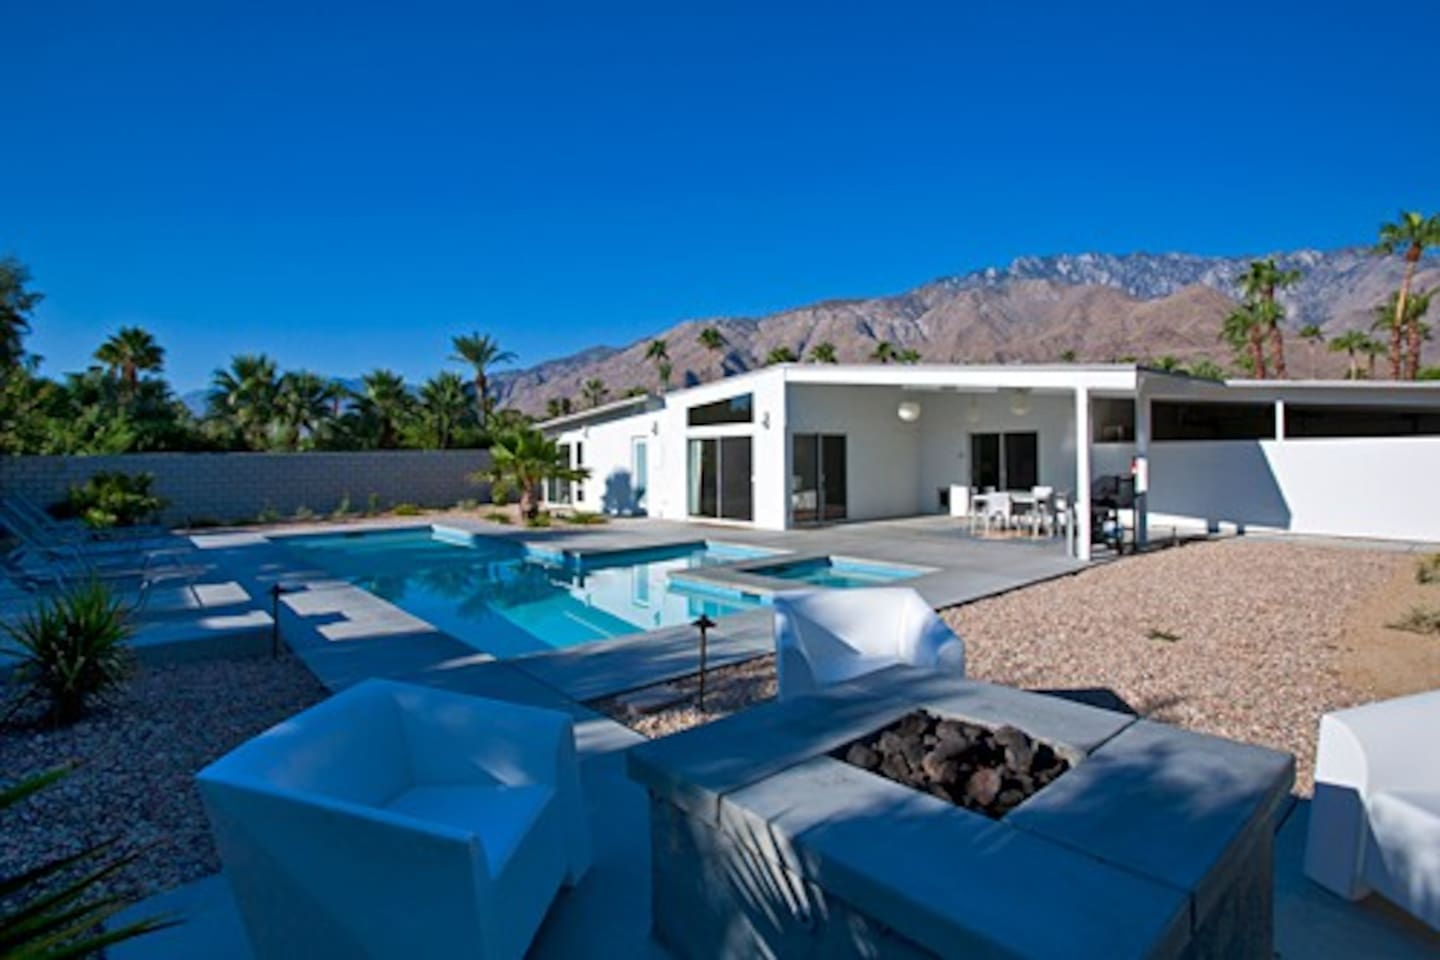 42 foot long lap pool with stunning views of the San Jacinto Mountains